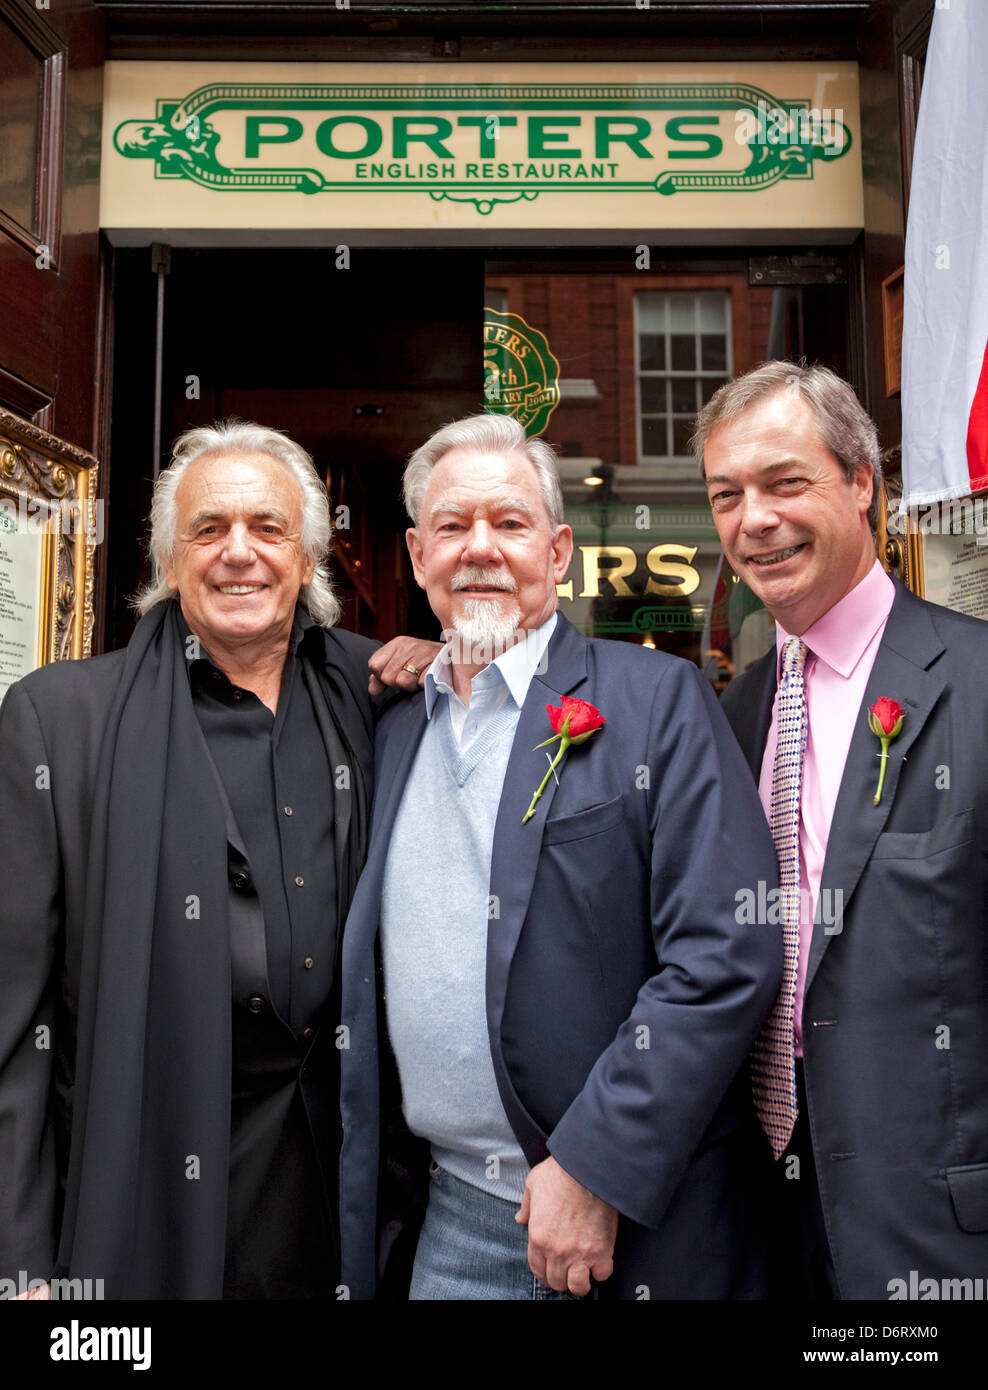 UKIP CANDIDATE FOR WESTMINSTER HYDE PARK RICHARD BRADFORD FLANKED BY UKIP LEADER NIGEL FARAGE (R) AND PETER STRINGFELLLOW - Stock Image